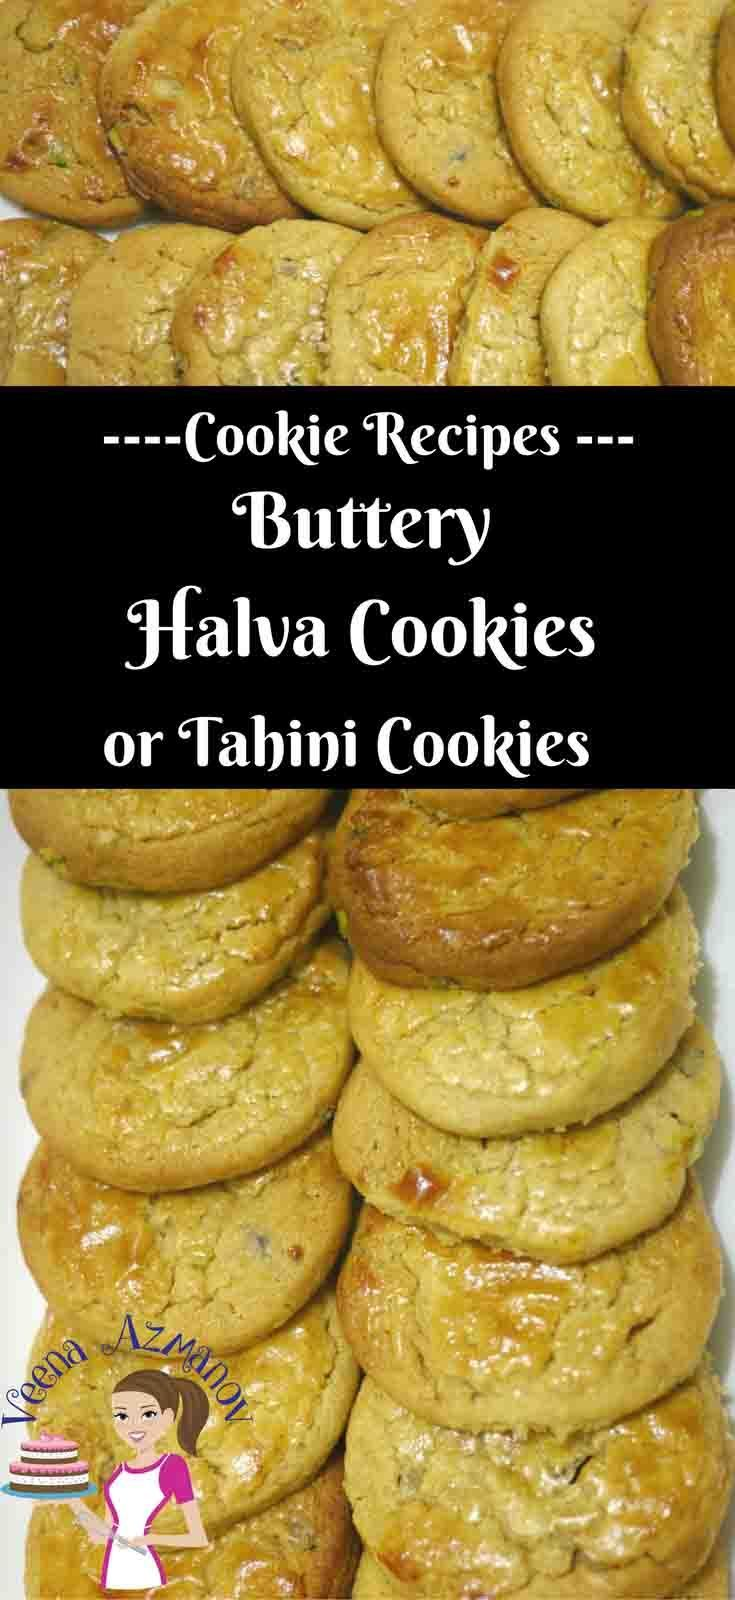 These halva cookies are a real treat and melt in the mouth. Unlike traditional halva cookies these are based on my butter cookie recipe and use grated pistachio halva then baked until golden and delicious